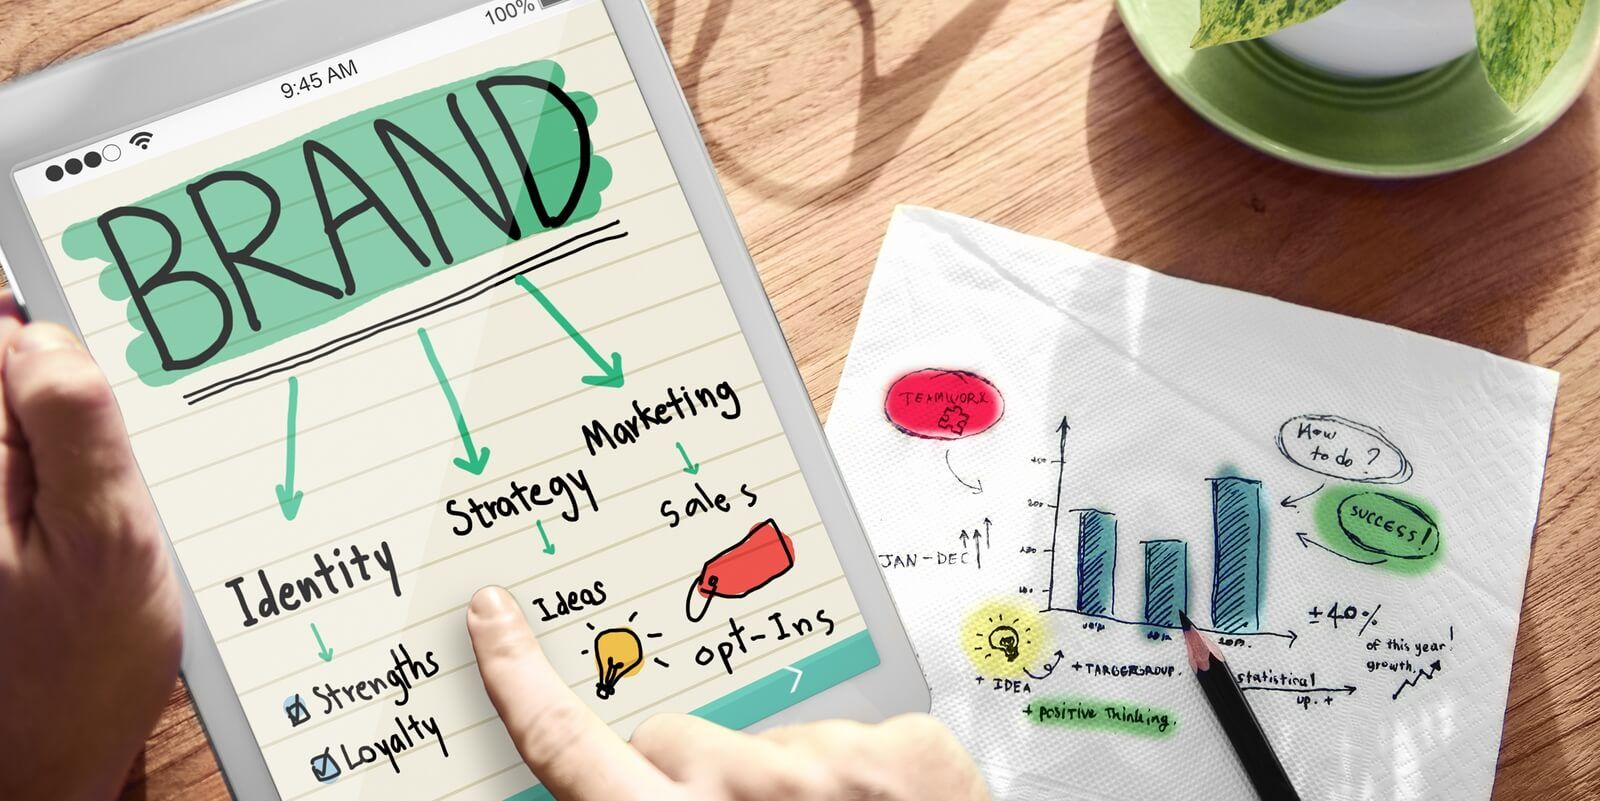 How To Market Yourself For Jobs In The Freelance Economy Ecommerce Solutions Branding Your Business Start Up Business